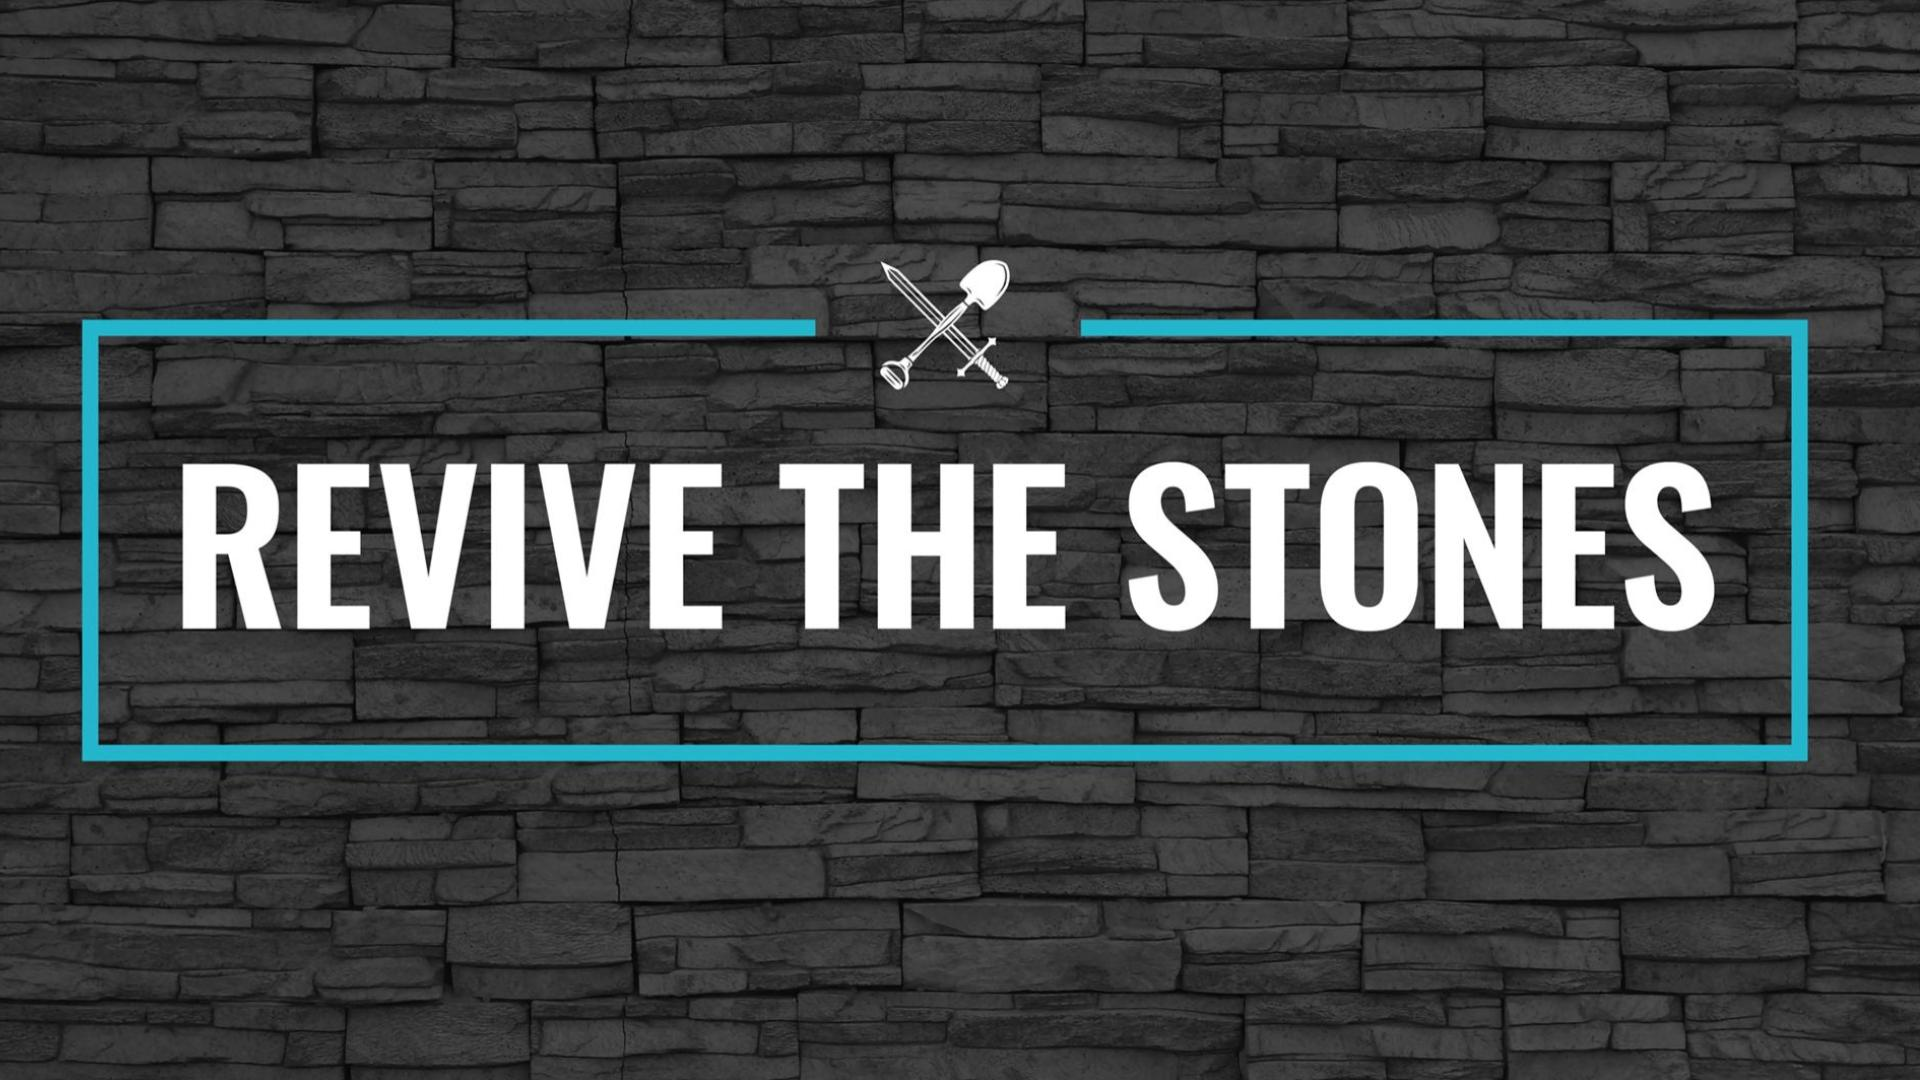 Revive the Stones